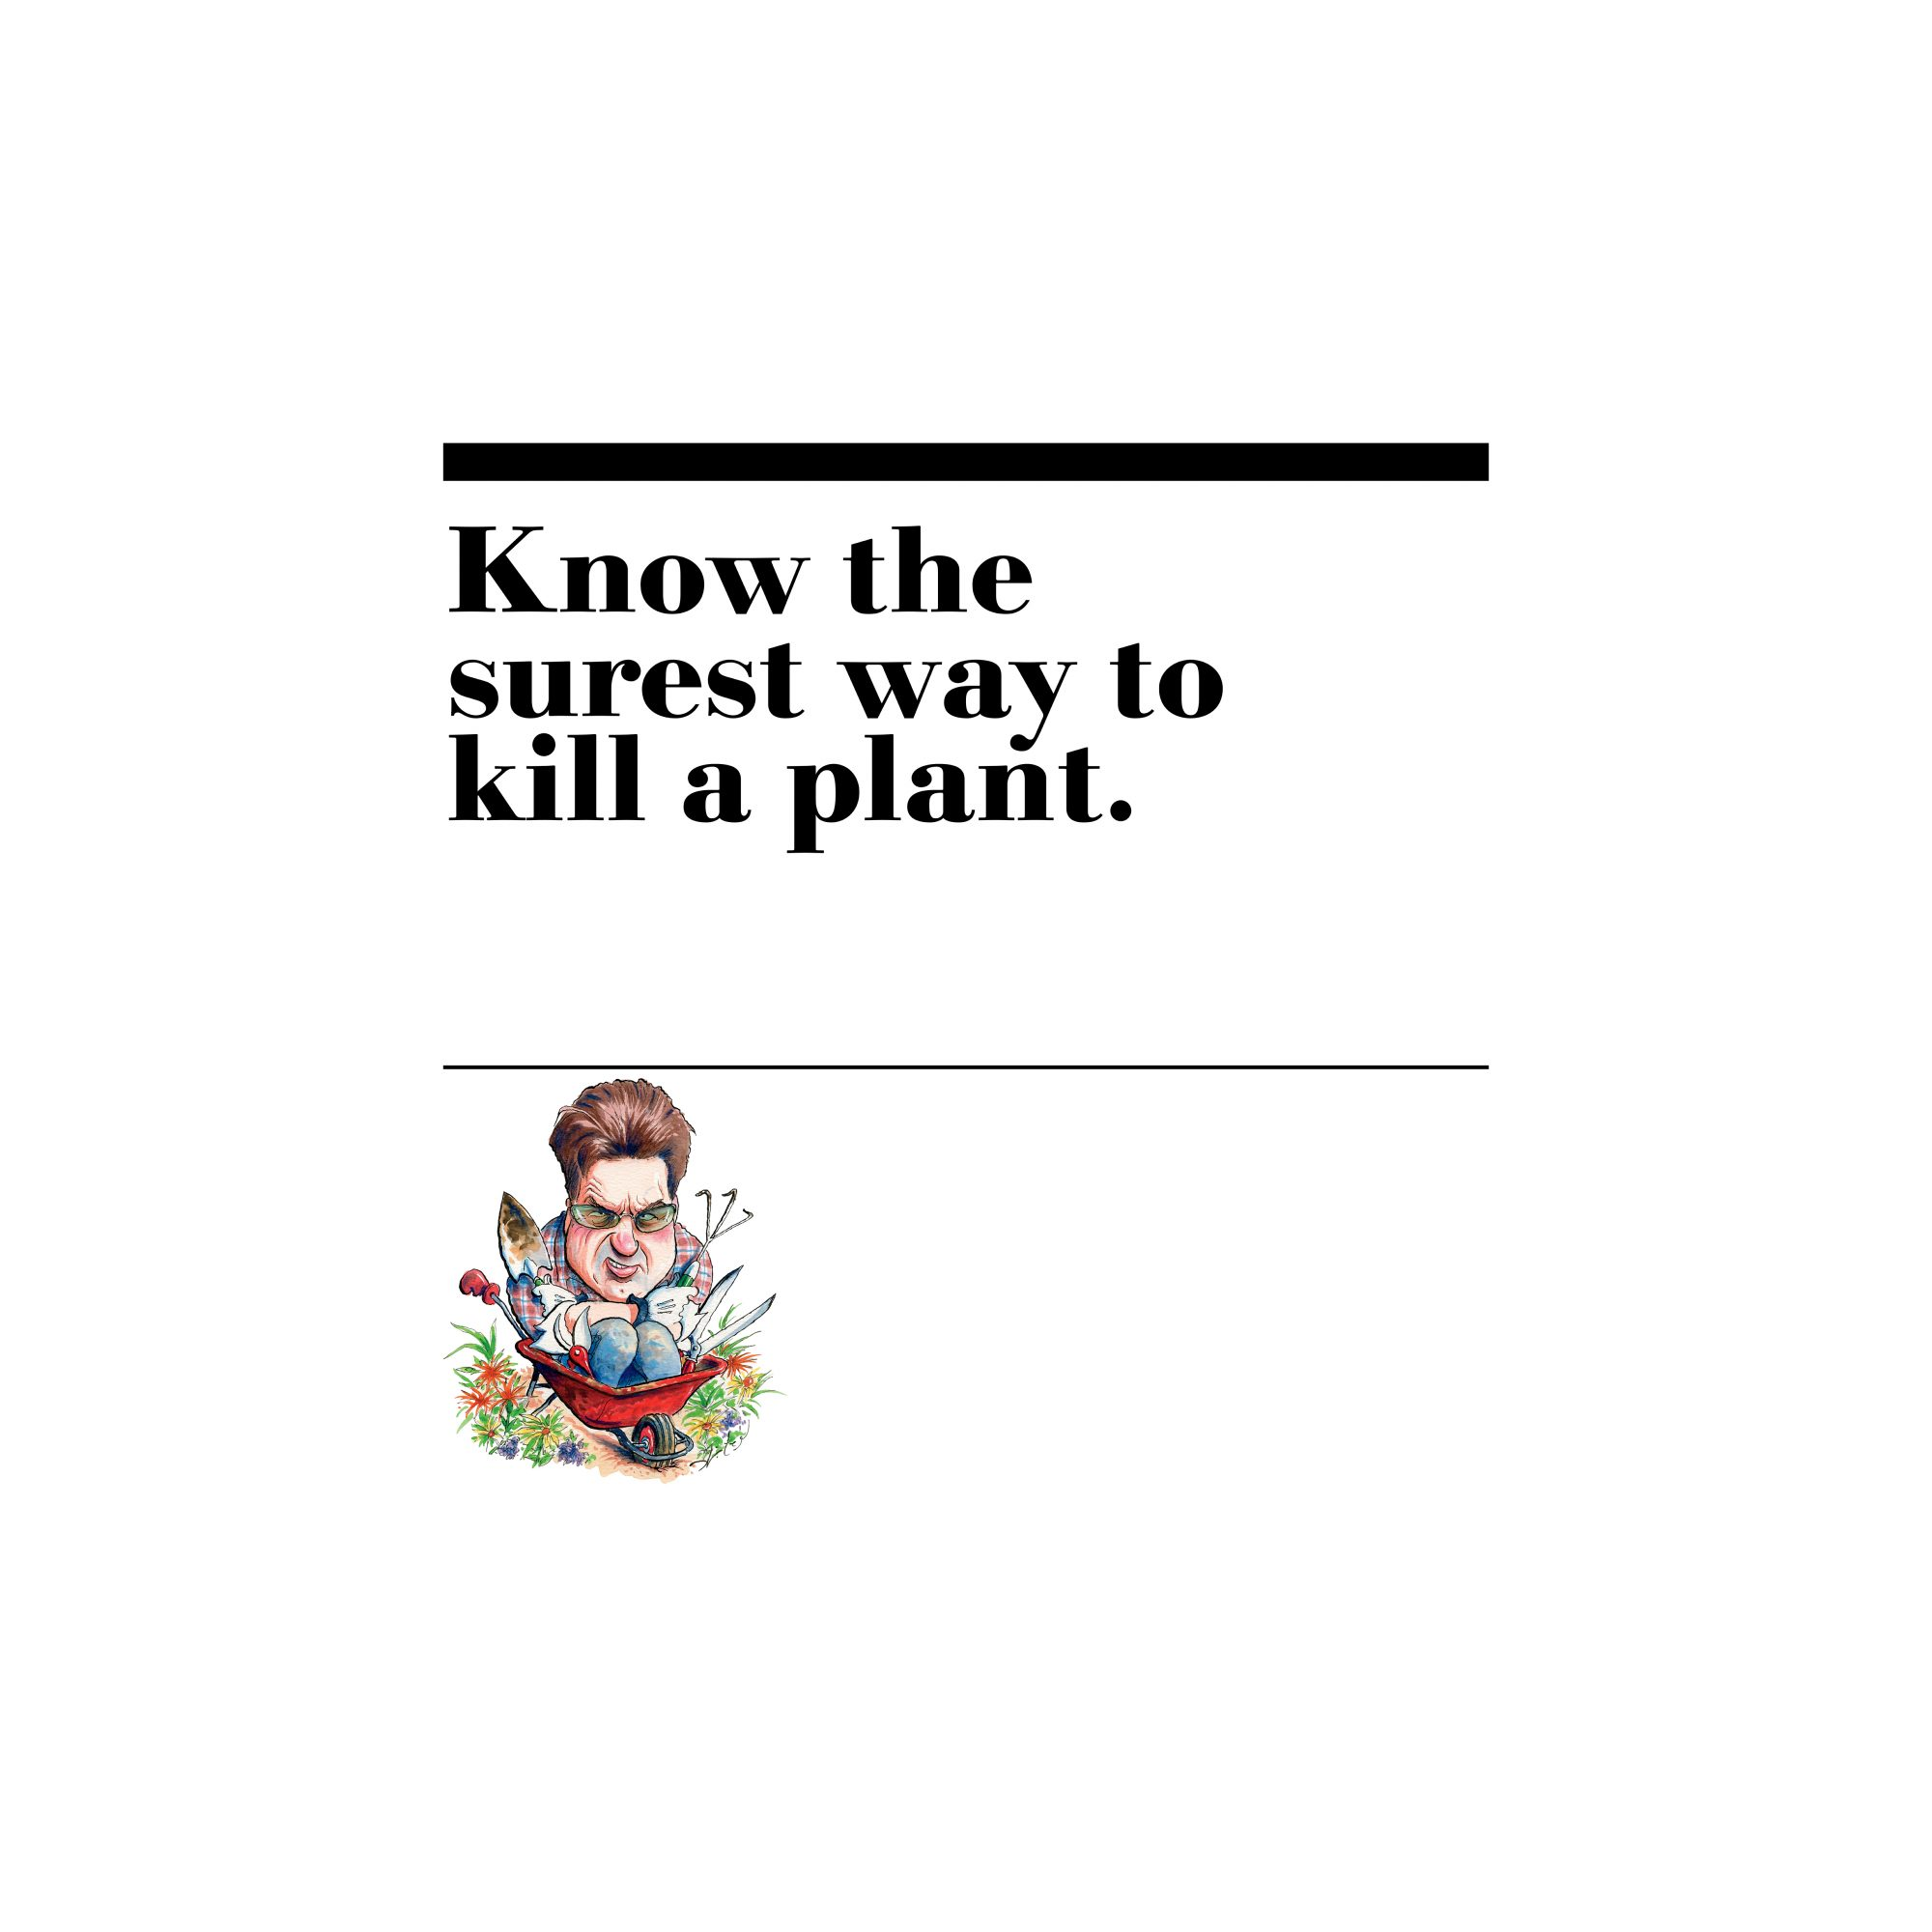 19. Know the surest way to kill a plant.